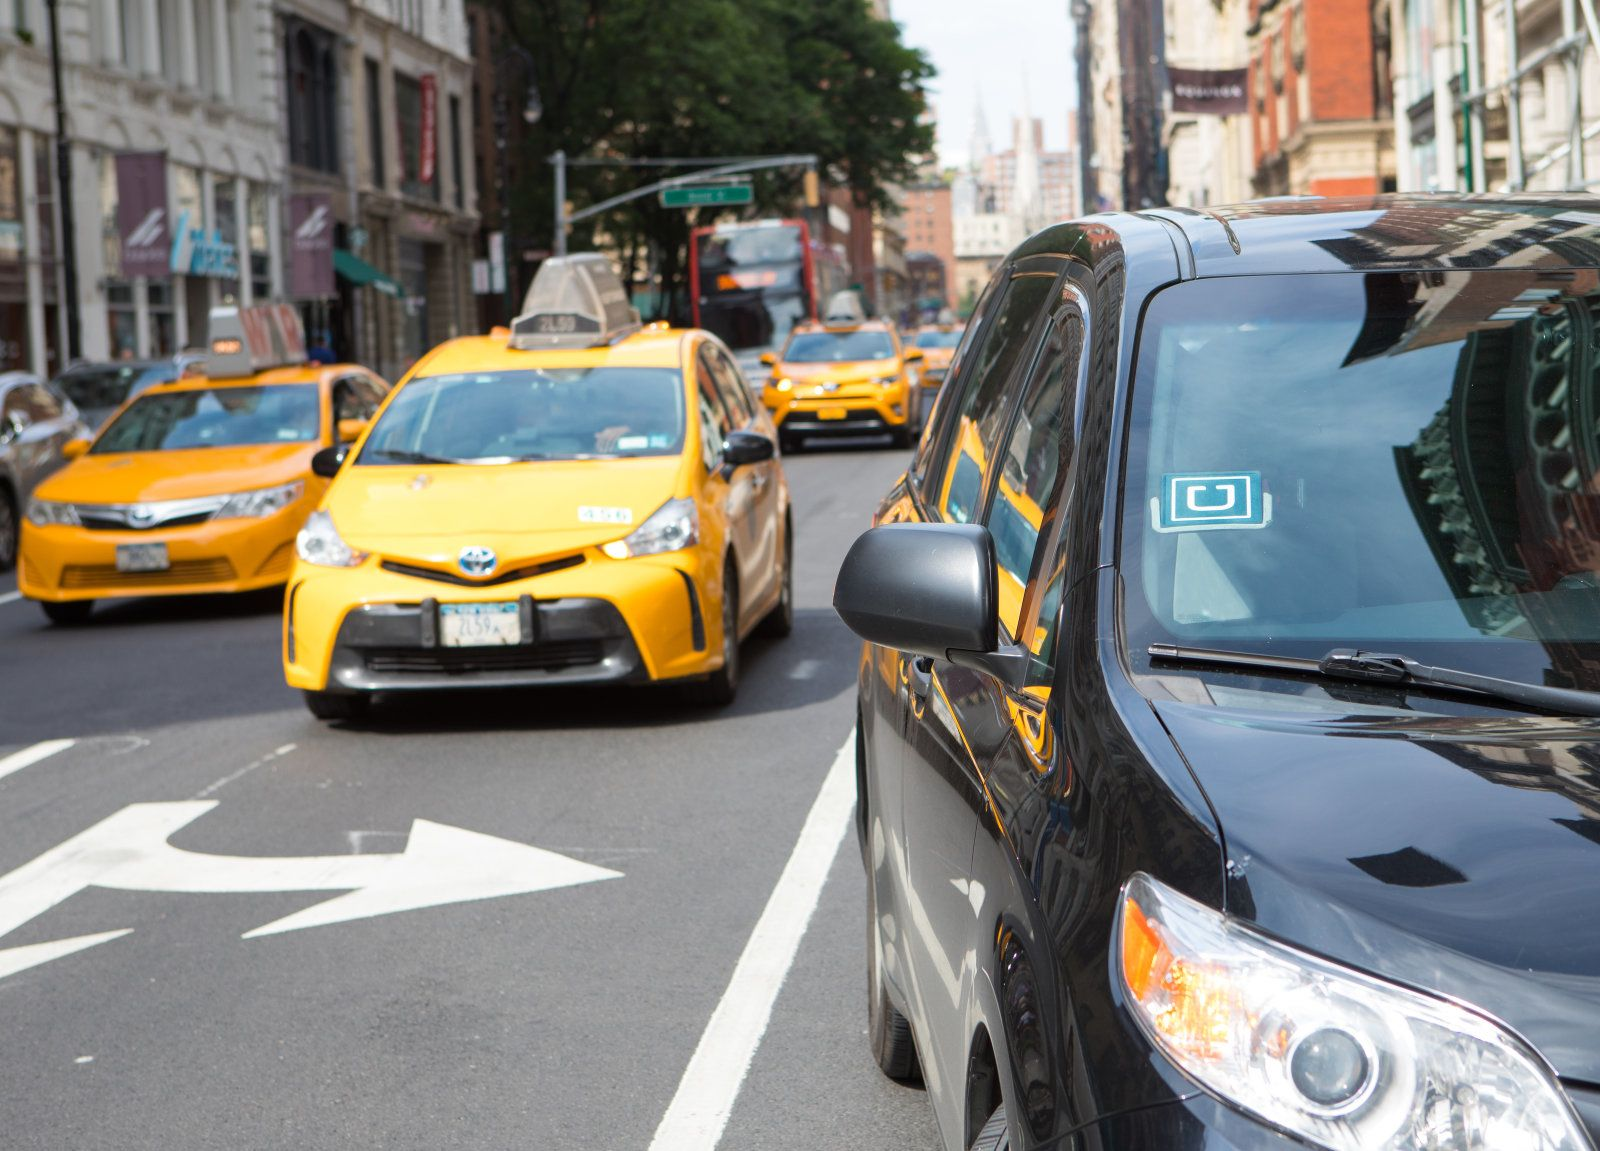 New York blocca emissione licenze a Uber - Ultima Ora